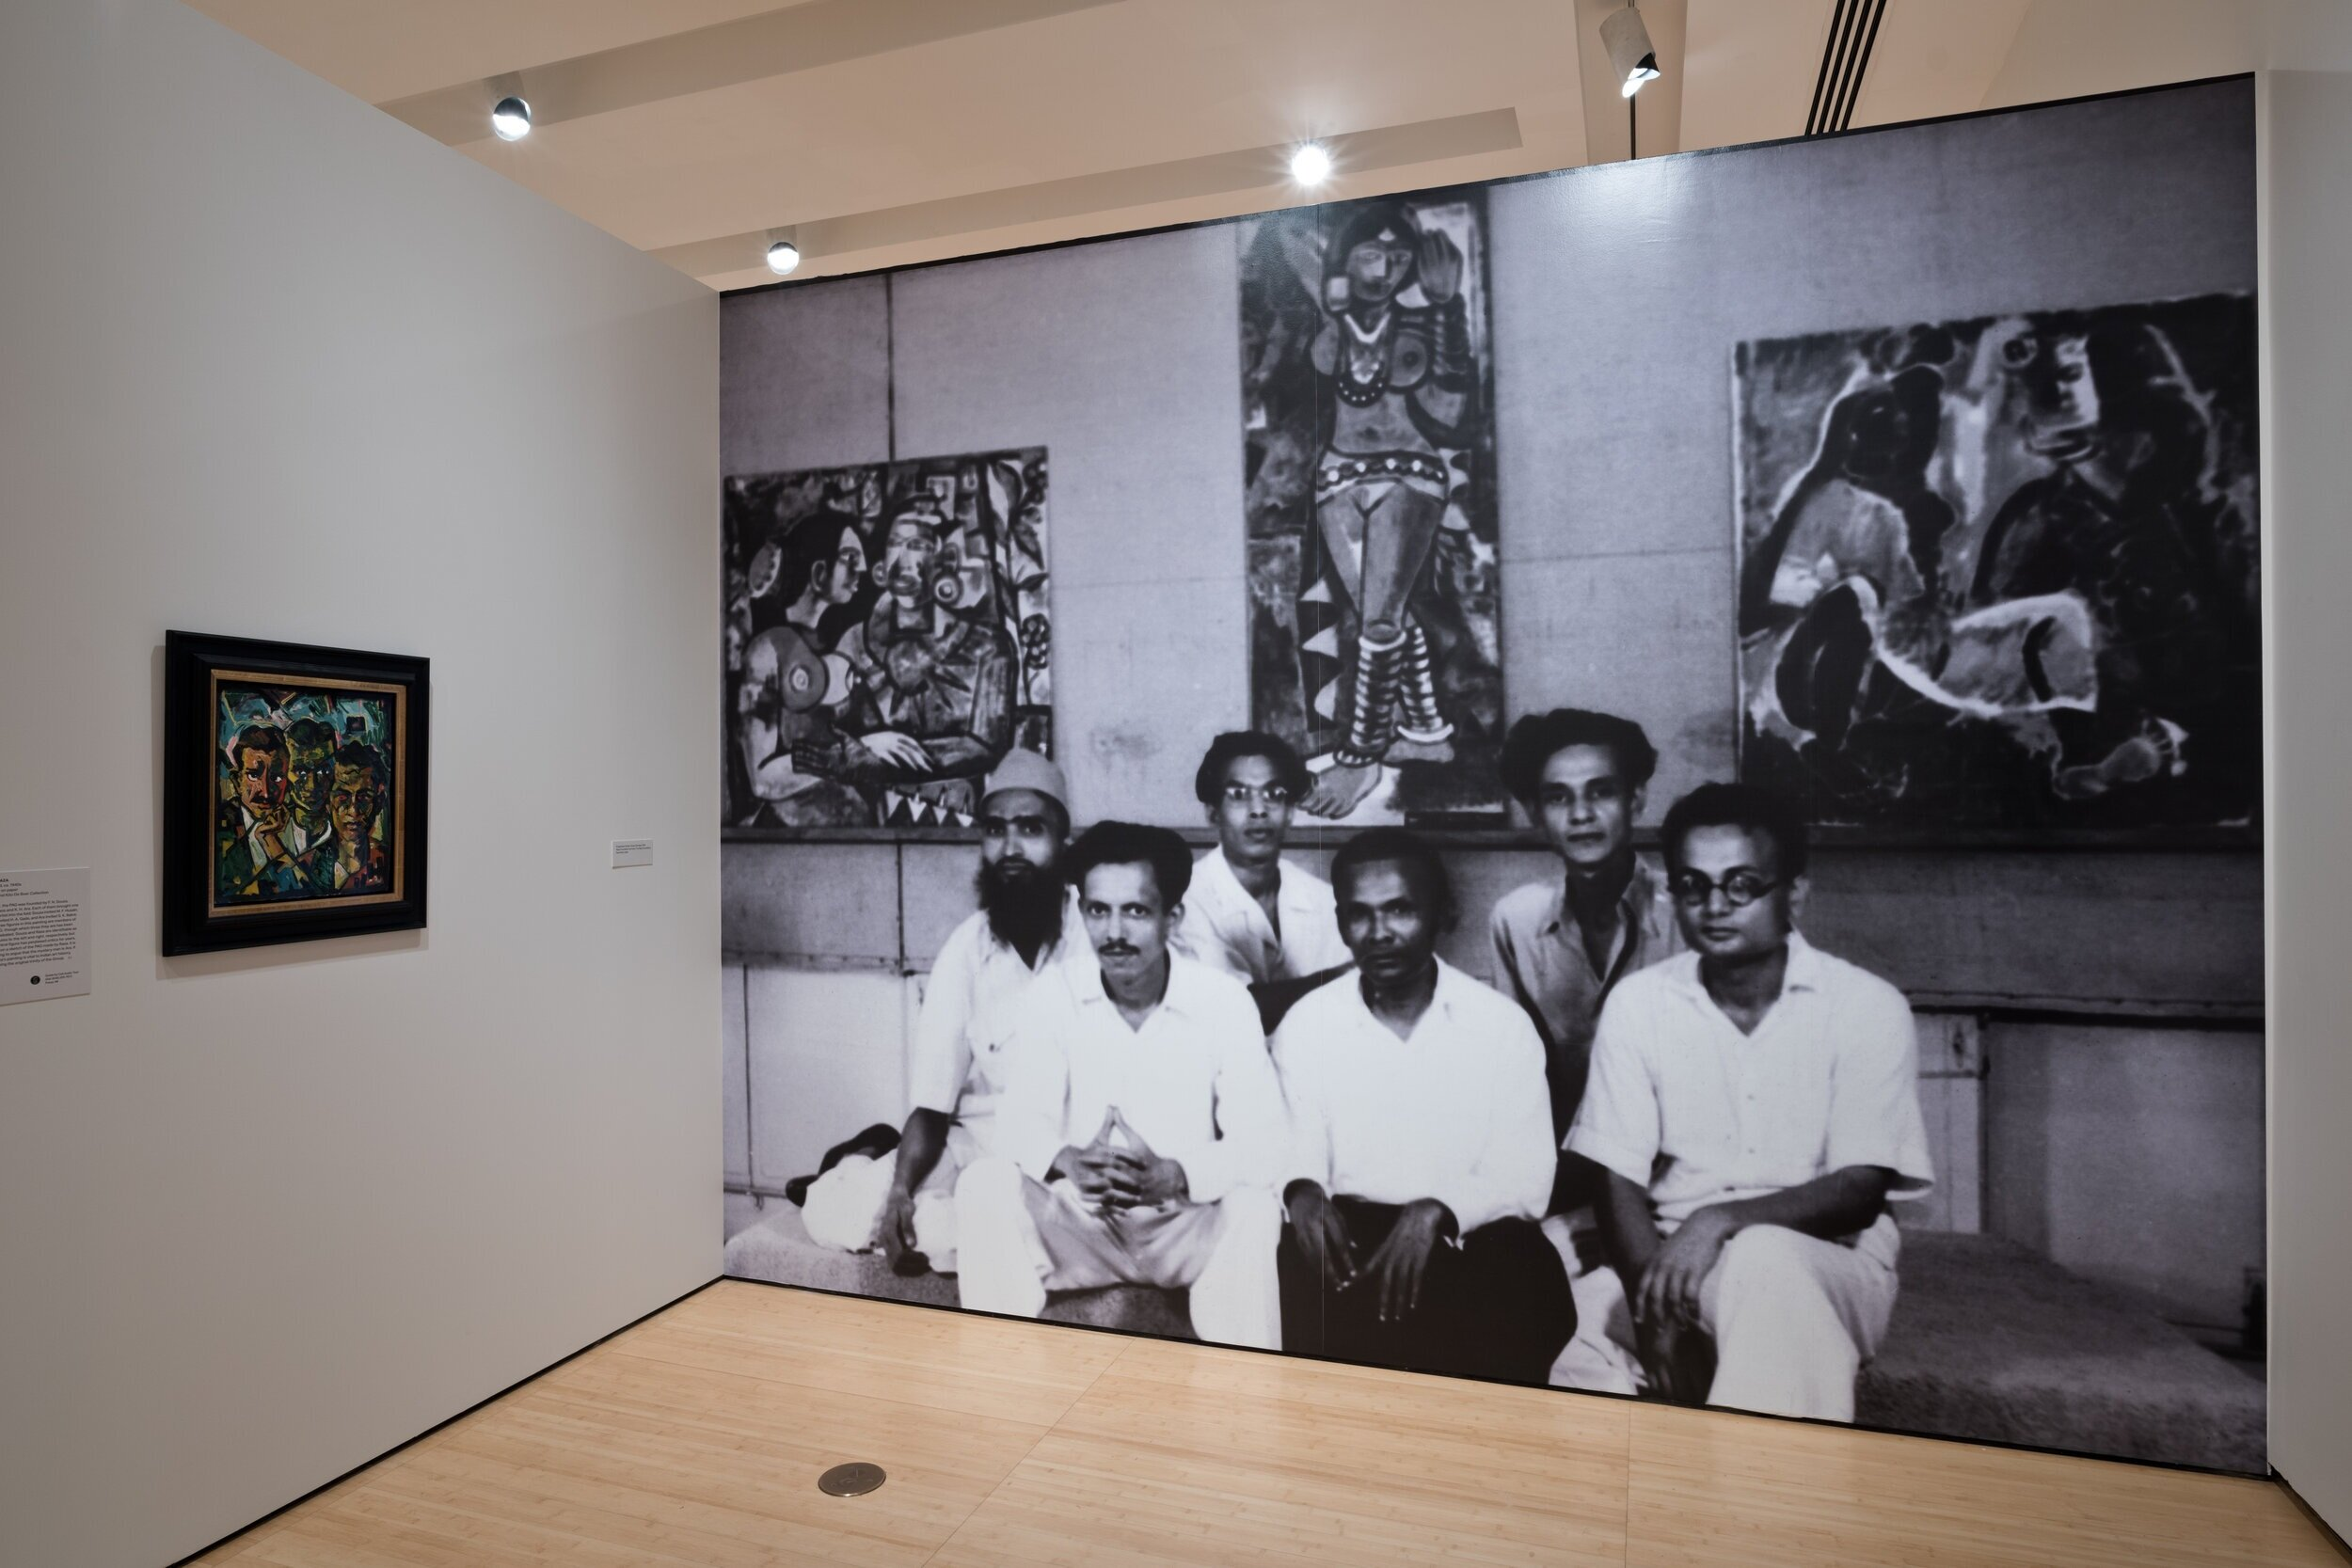 """Installation view of exhibition """"The Progressive Revolution: Modern Art for a New India"""" at Asia Society Museum, New York, 2018. Photograph, Perry Hu; courtesy Asia Society Museum. S.H. Raza.  Untitled , ca. 1940s, Jane and Kito de Boer Collection. Progressive Artists Group, Bombay, 1949. Image courtesy The Raza Archives, The Raza Foundation, New Delhi, India.  In Image (L-R), Row 1: F.N.Souza, K.H. Ara, H.A. Gade; Row 2: M.F. Hussain, S.K.Bakre, S.H. Raza"""